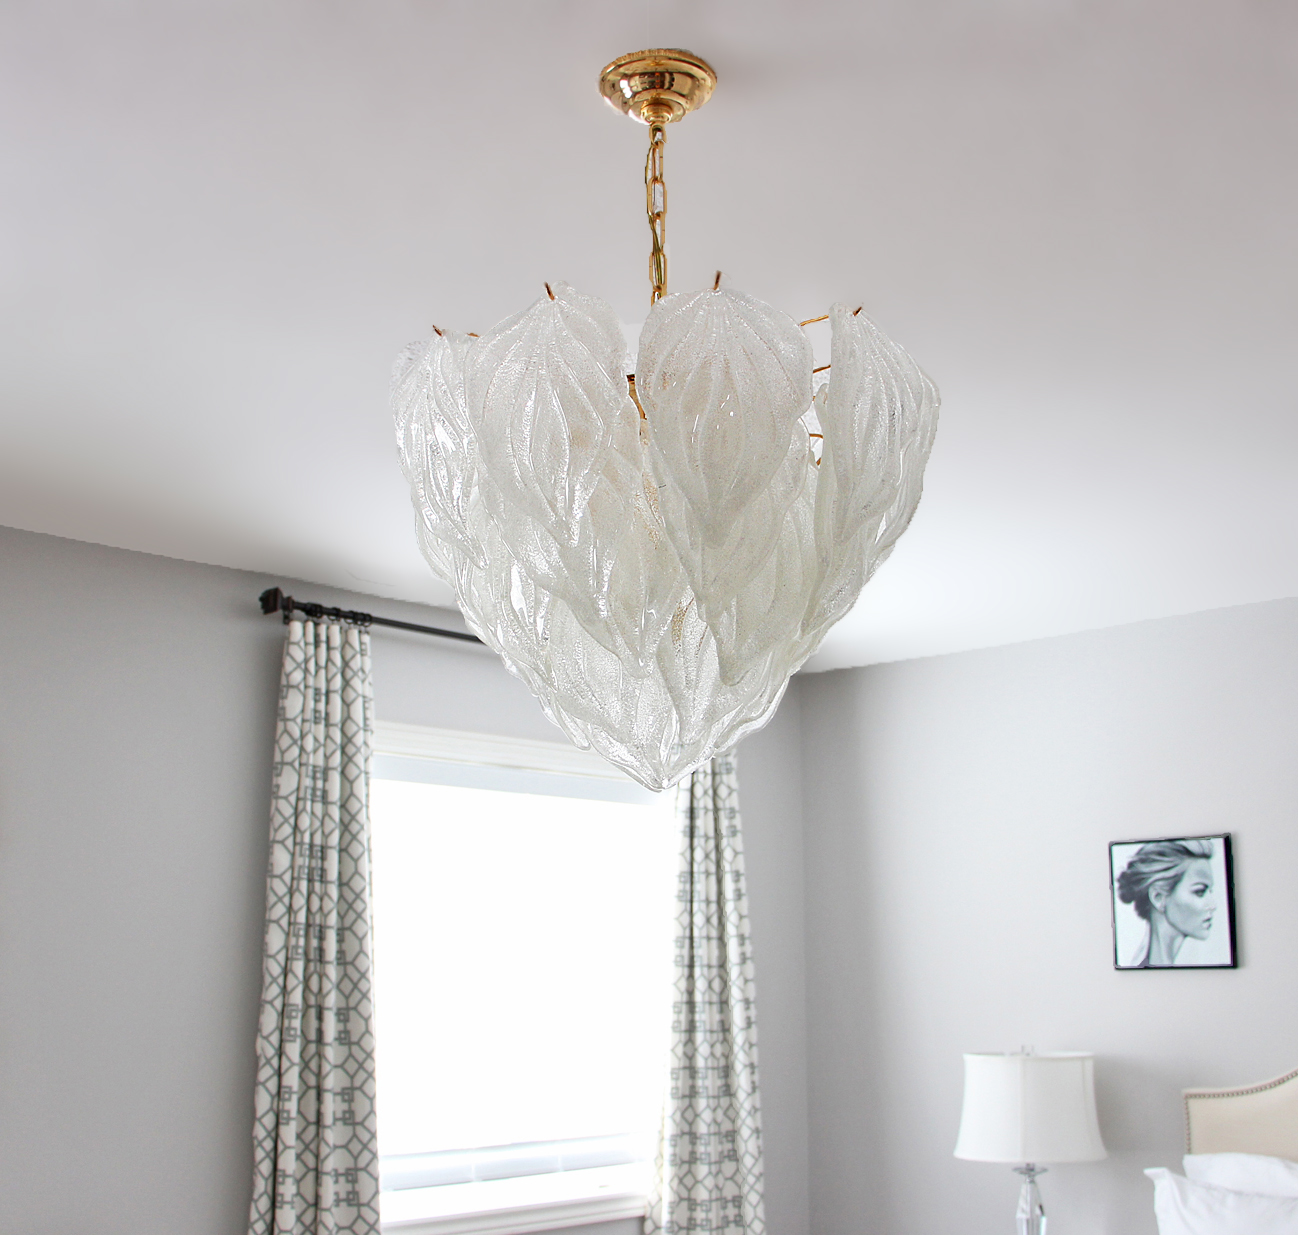 I Felt Could Look At It All Day Long S Now Hands Down My Favourite Lighting Fixture In House